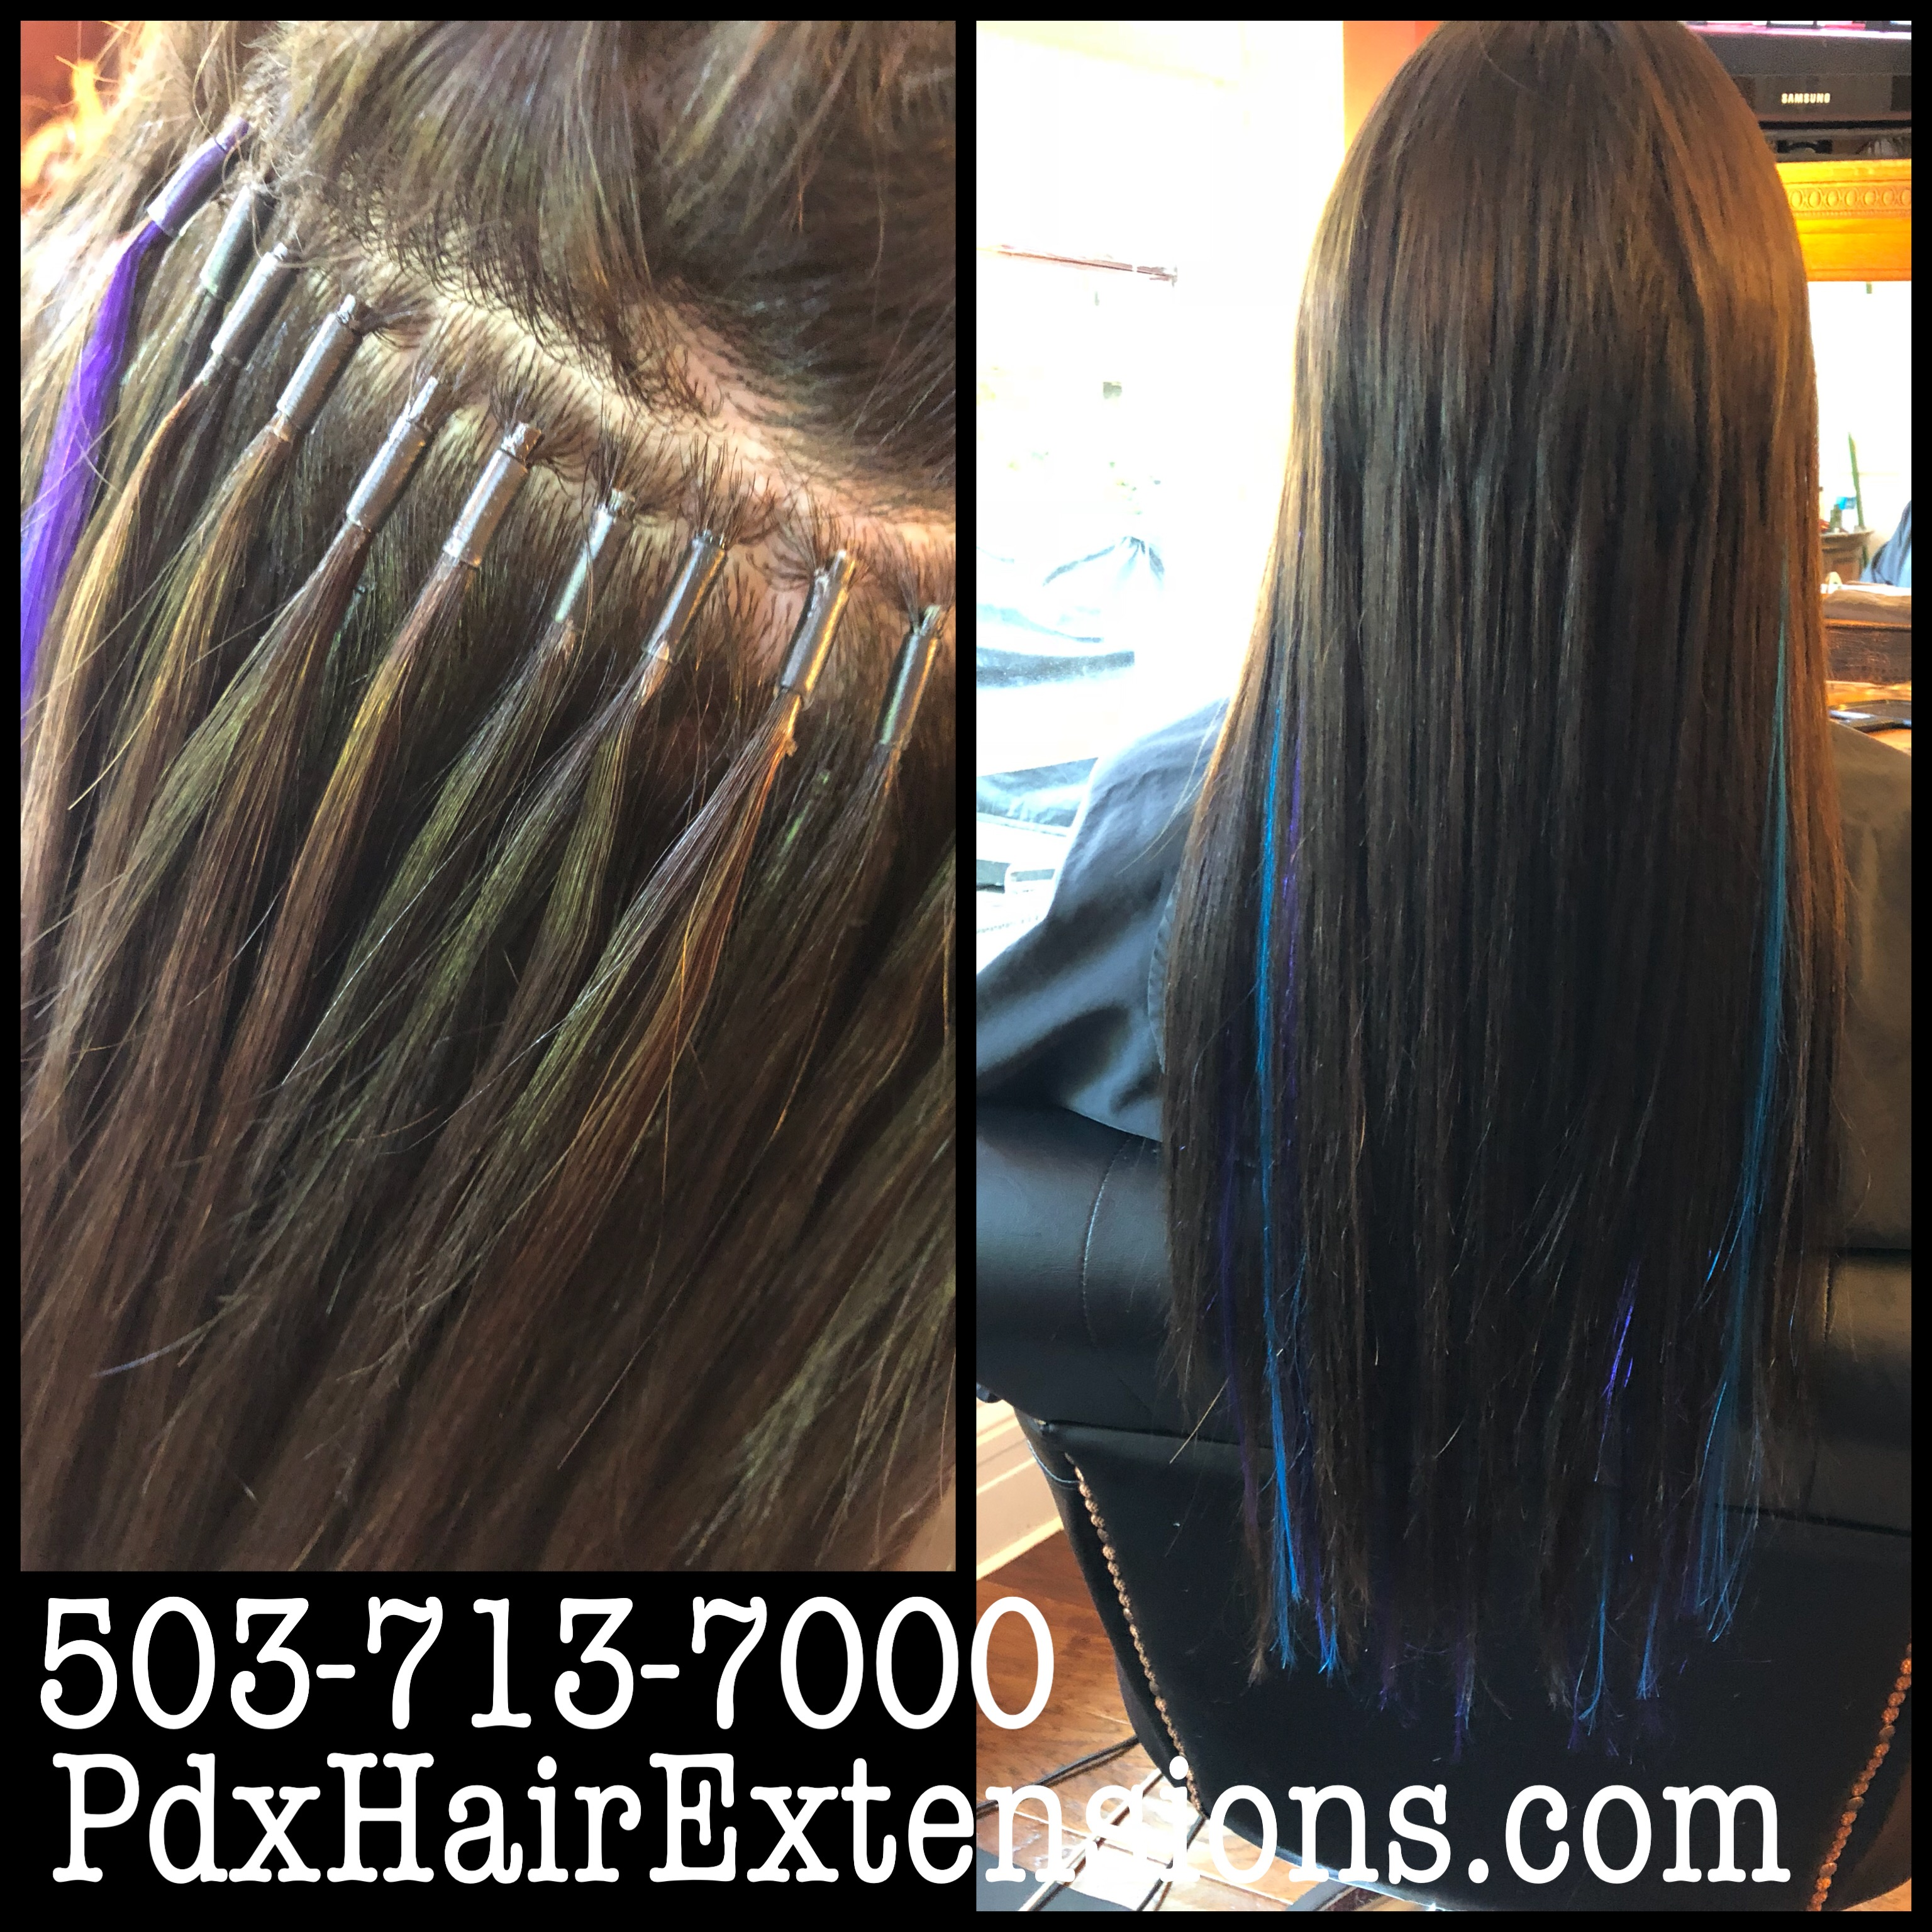 Hair Extensions